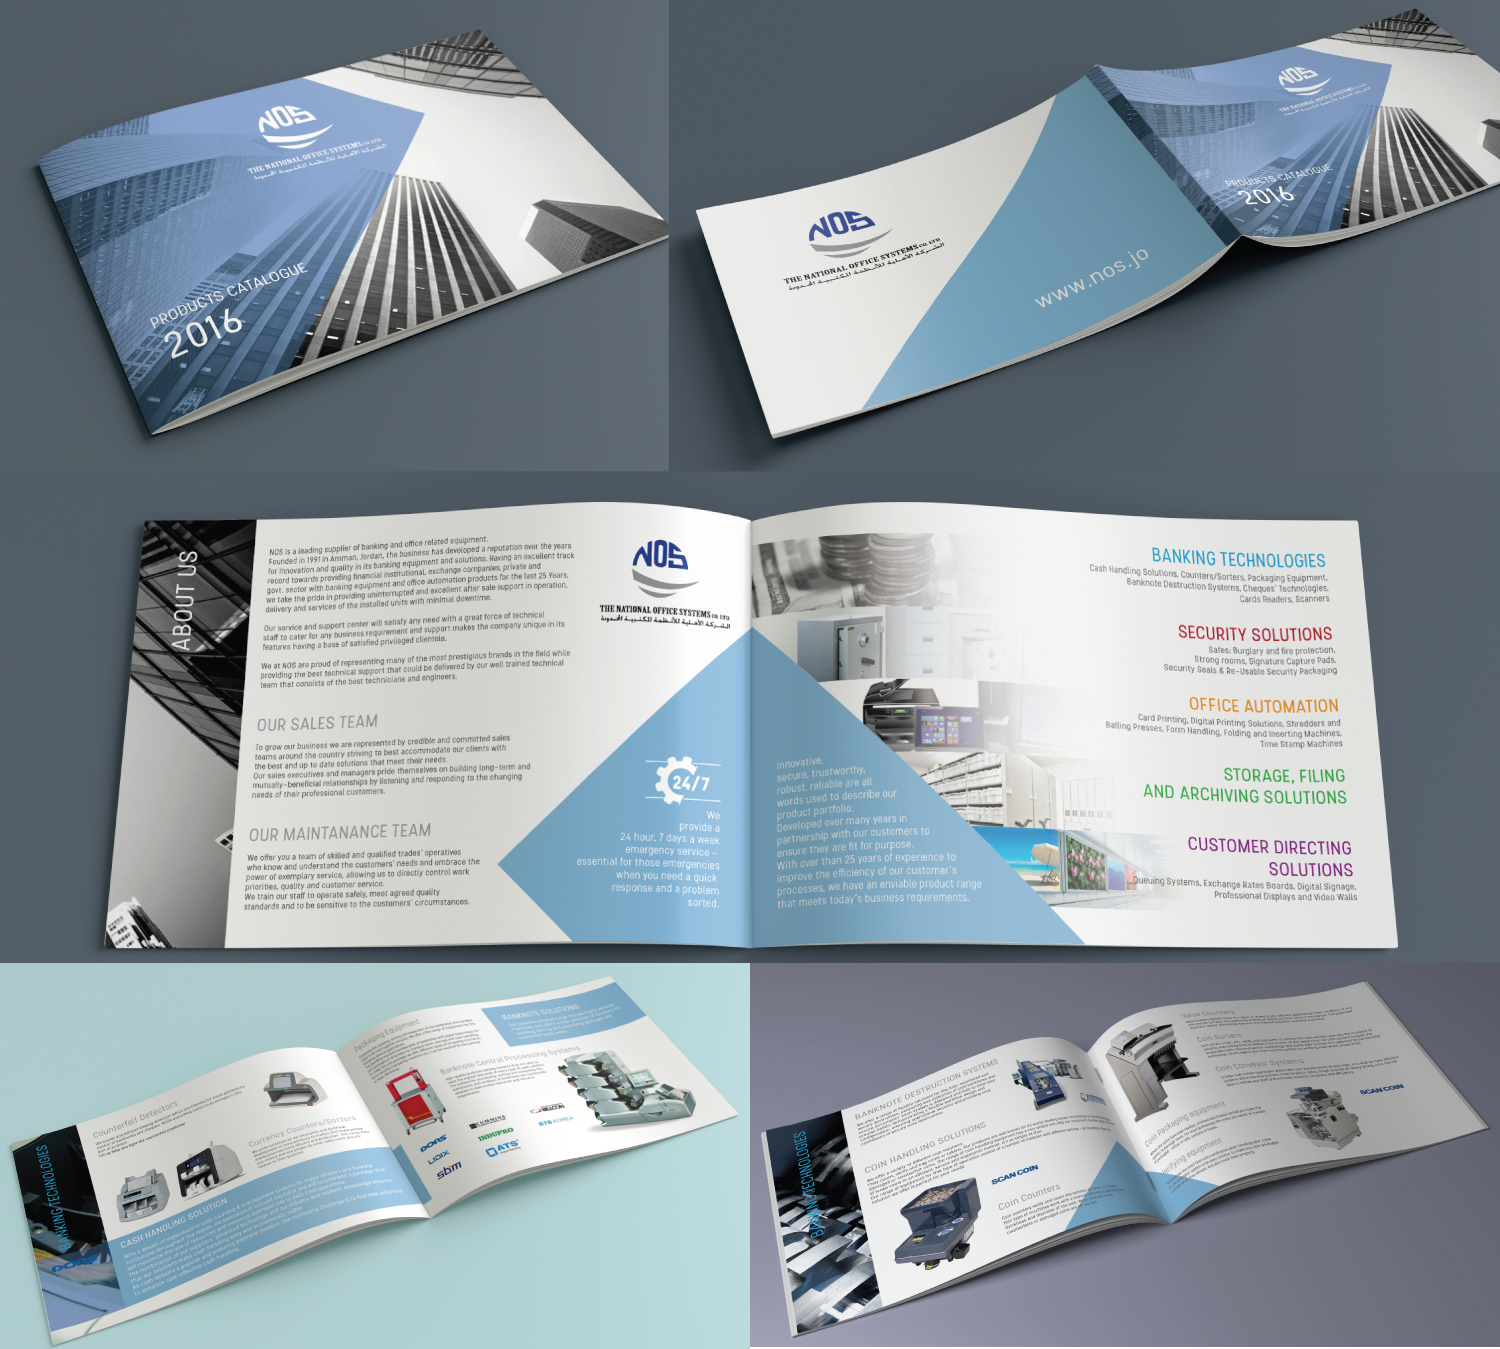 Elegant professional office furniture catalogue design for catalogue design by coo coo design for national office systems design 11238397 reheart Images